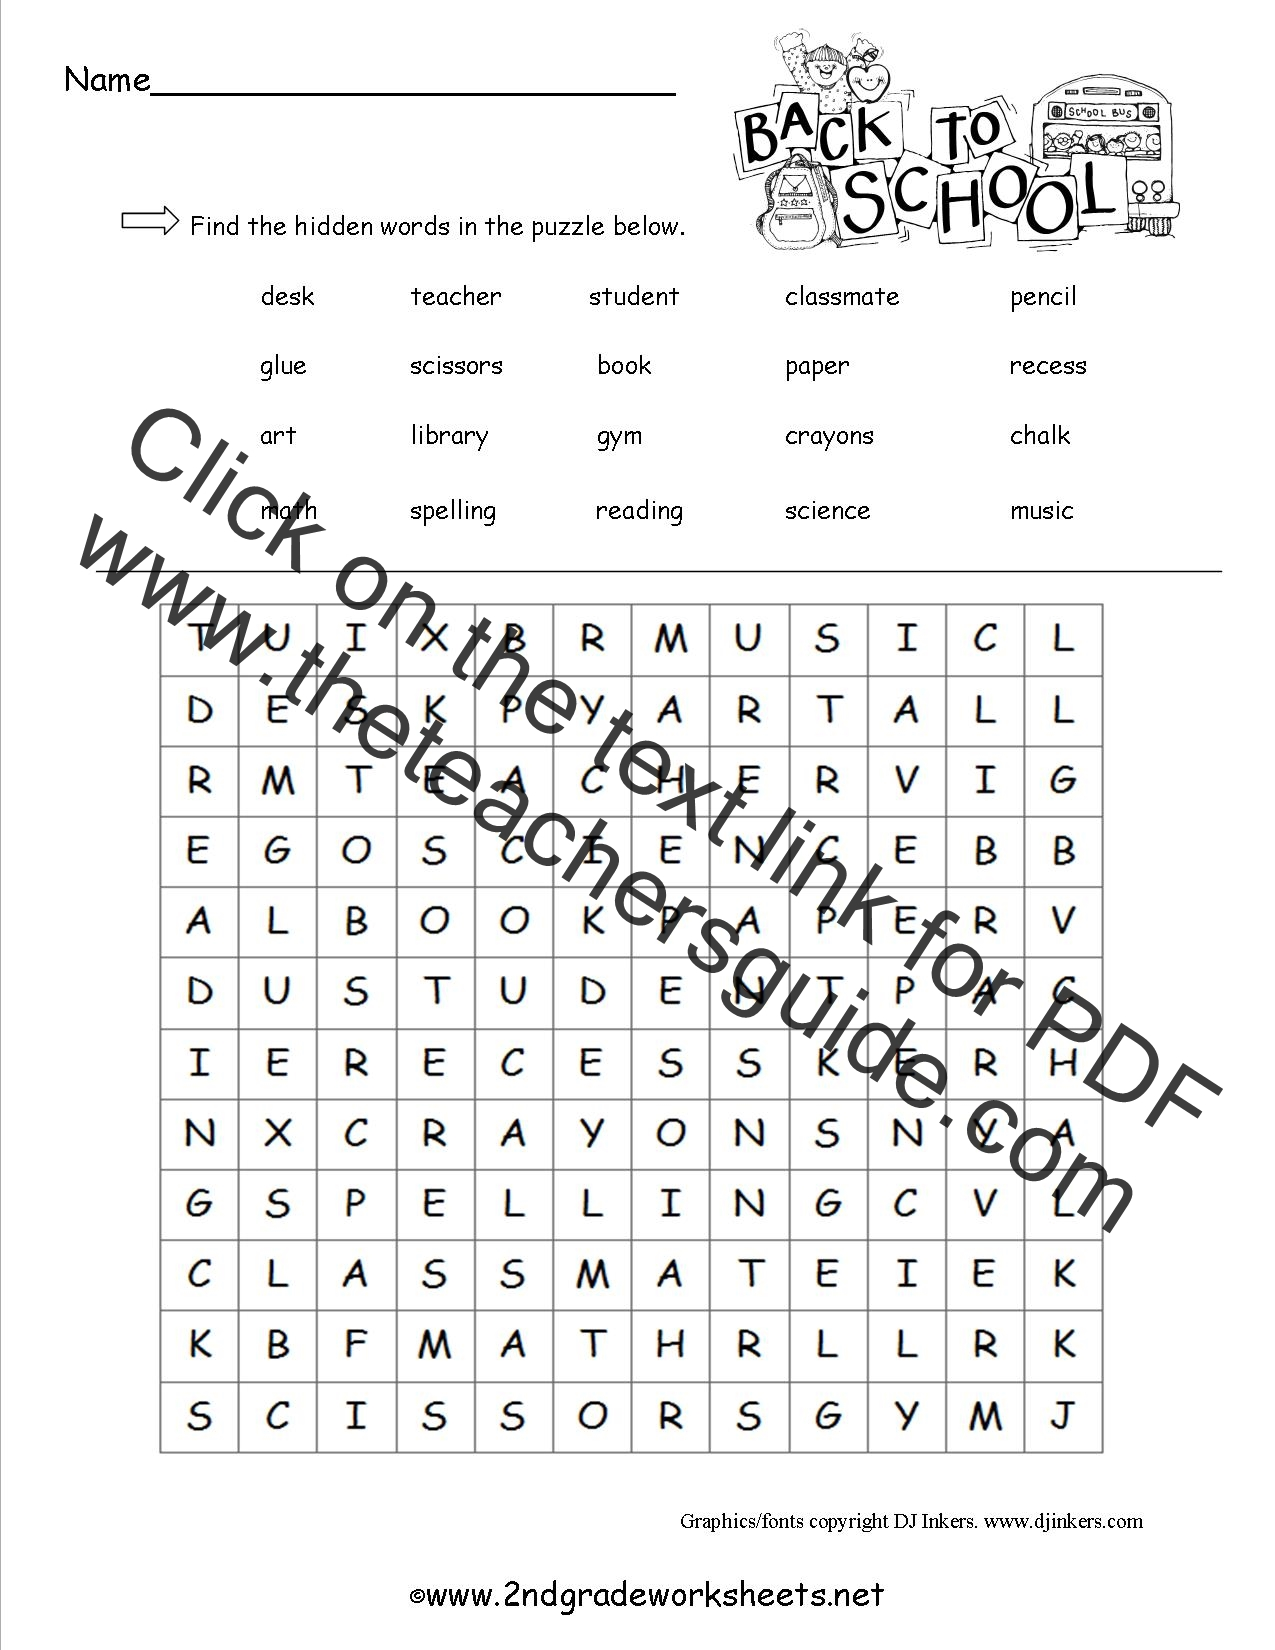 Free Back to School Worksheets and Printouts – First Day of School Worksheet